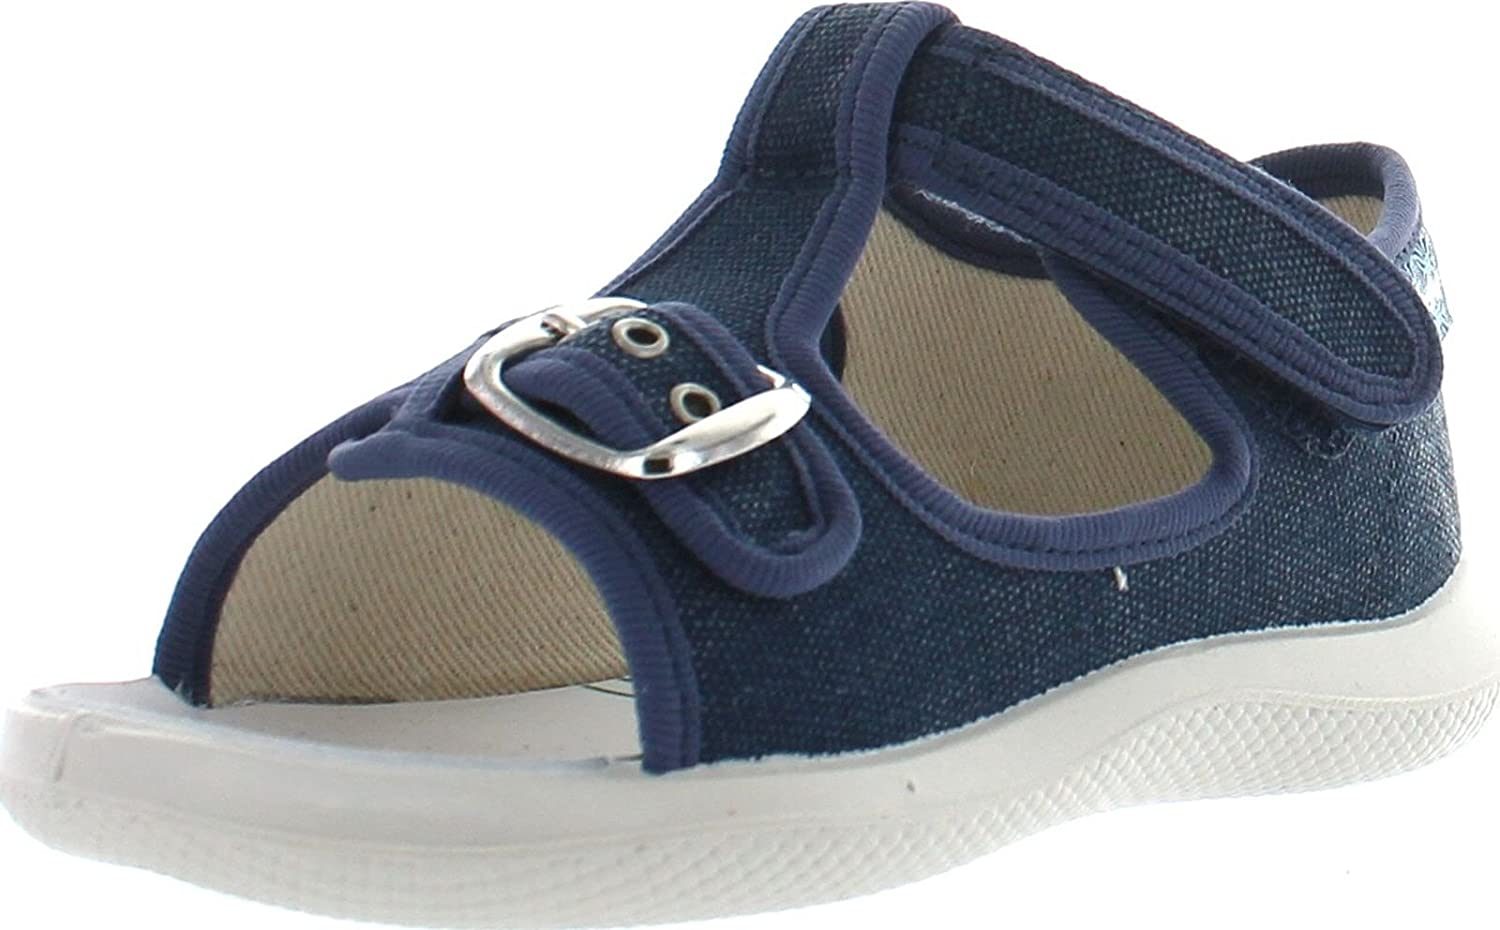 Naturino Boys 7786 Canvas Sandals with Buckle,Tela Jeans,21